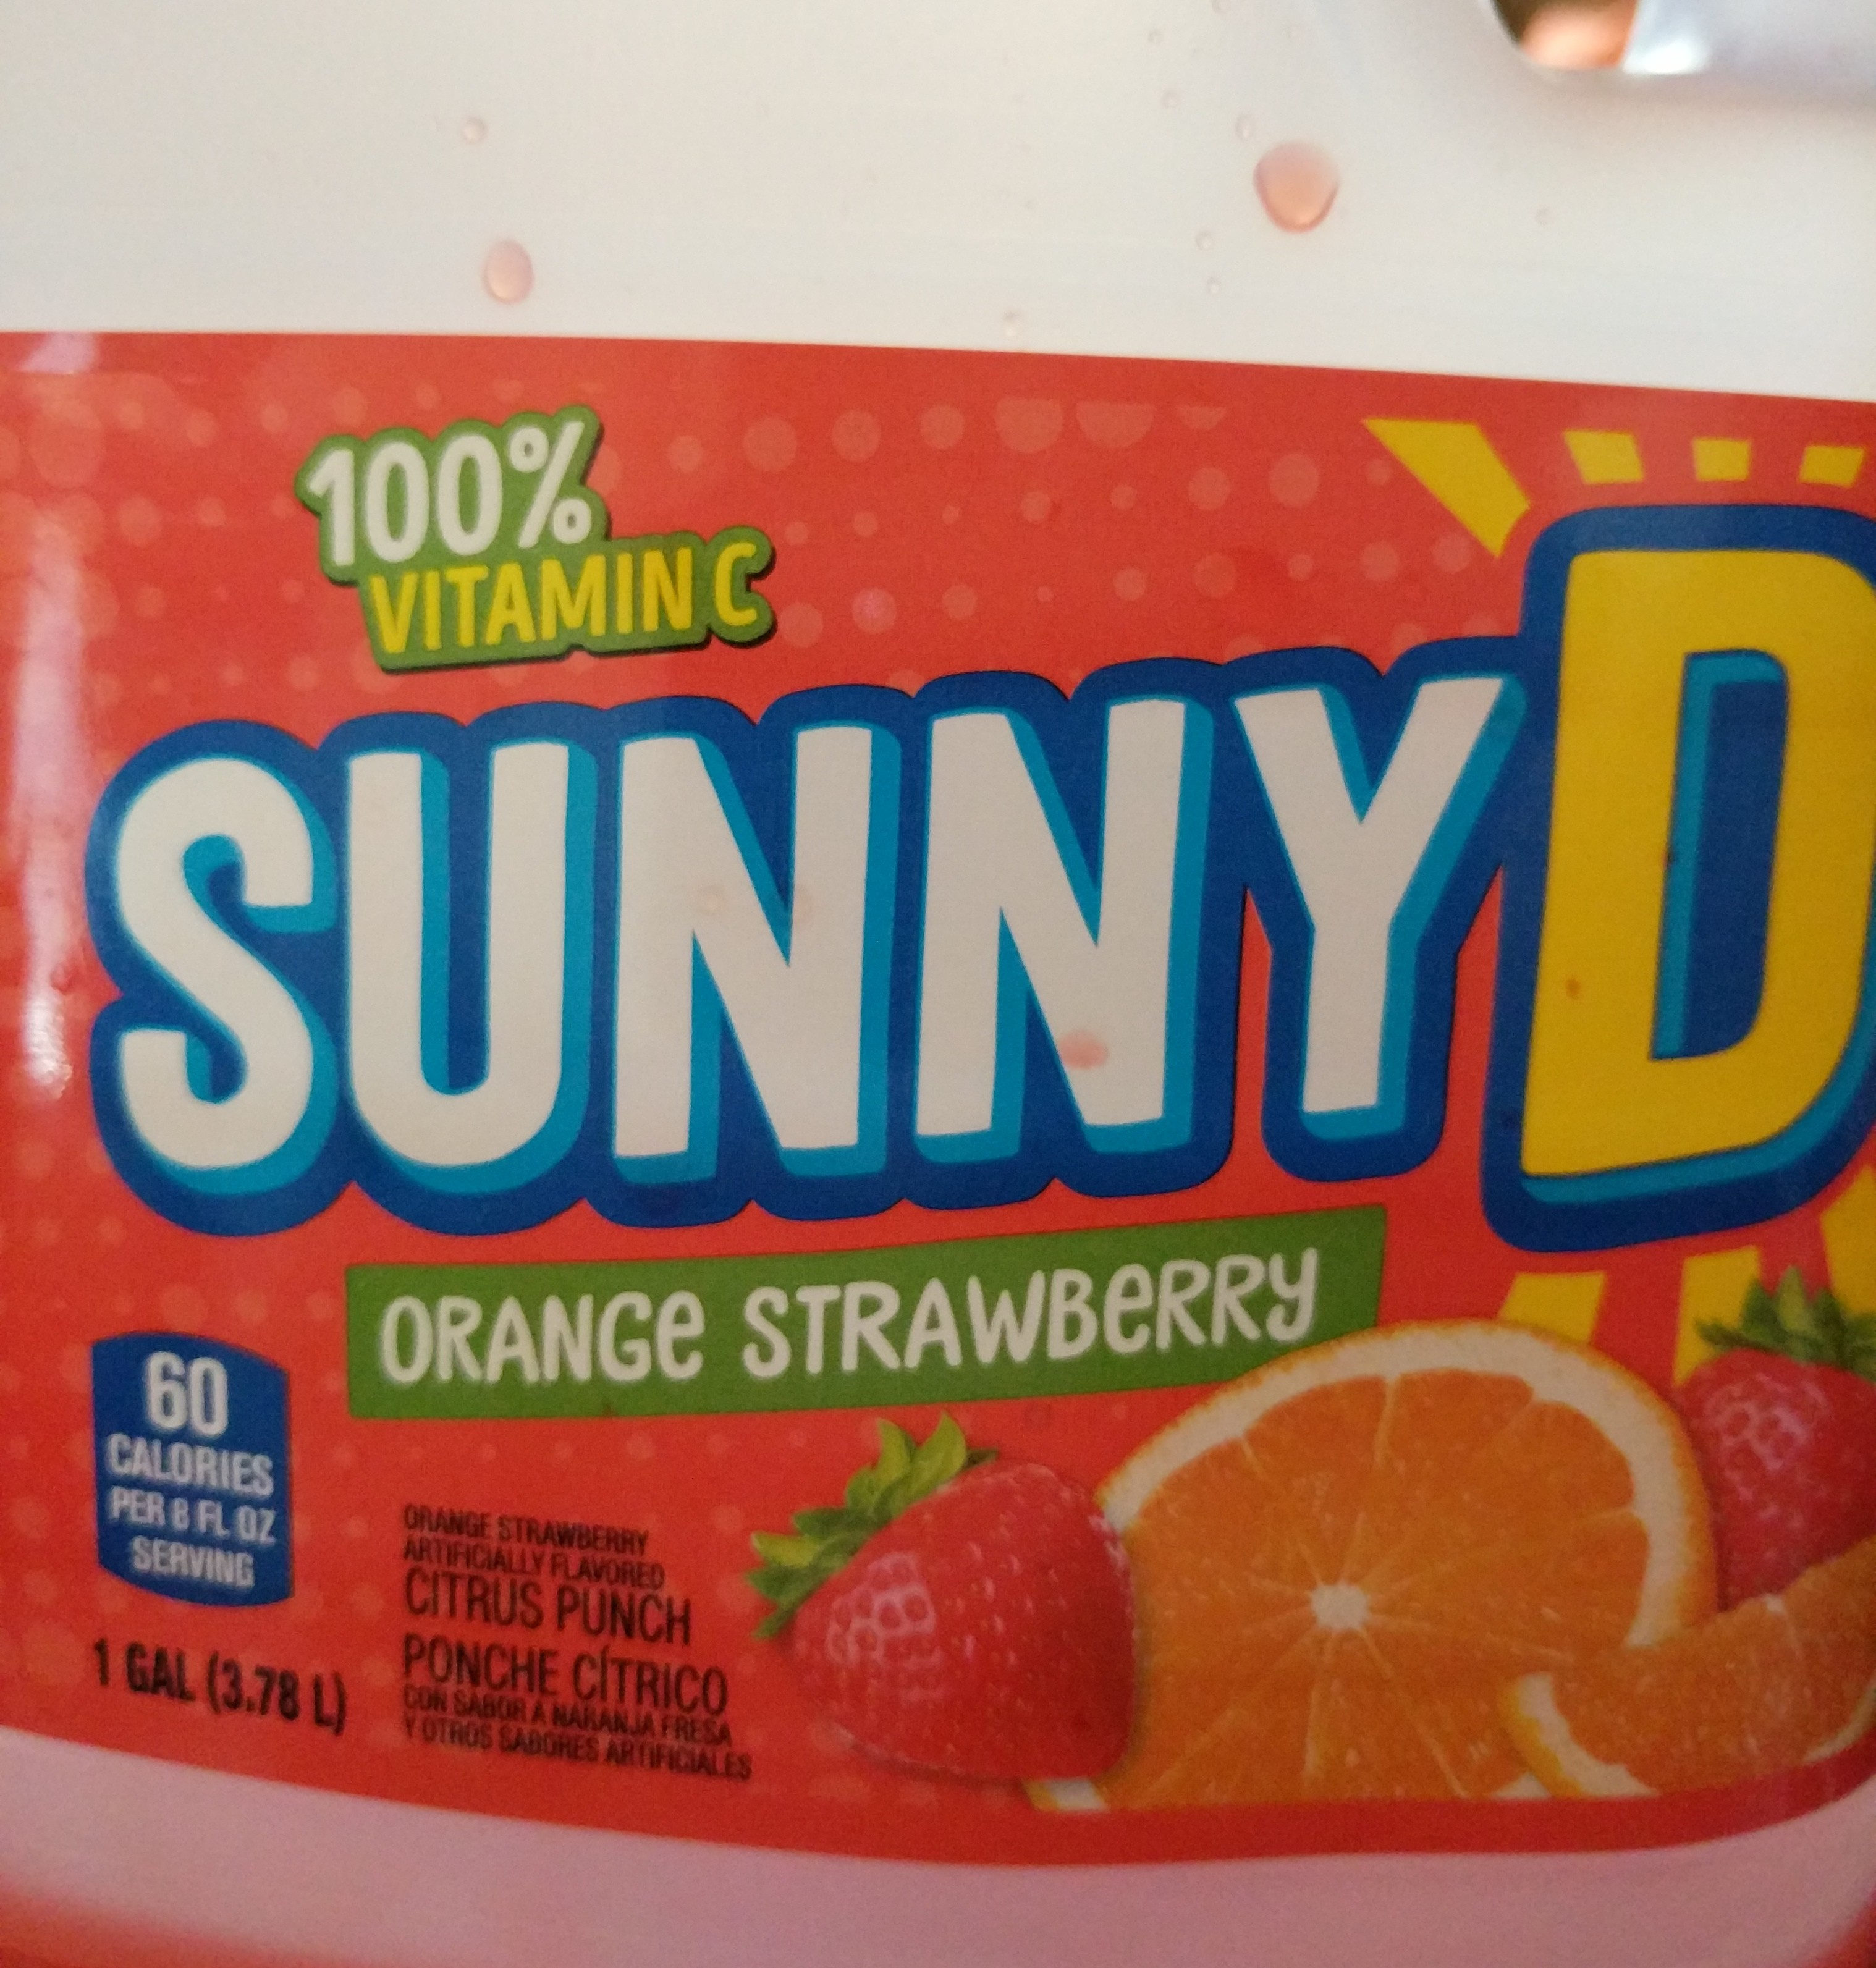 Citrus Punch Drink, Orange Strawberry - Product